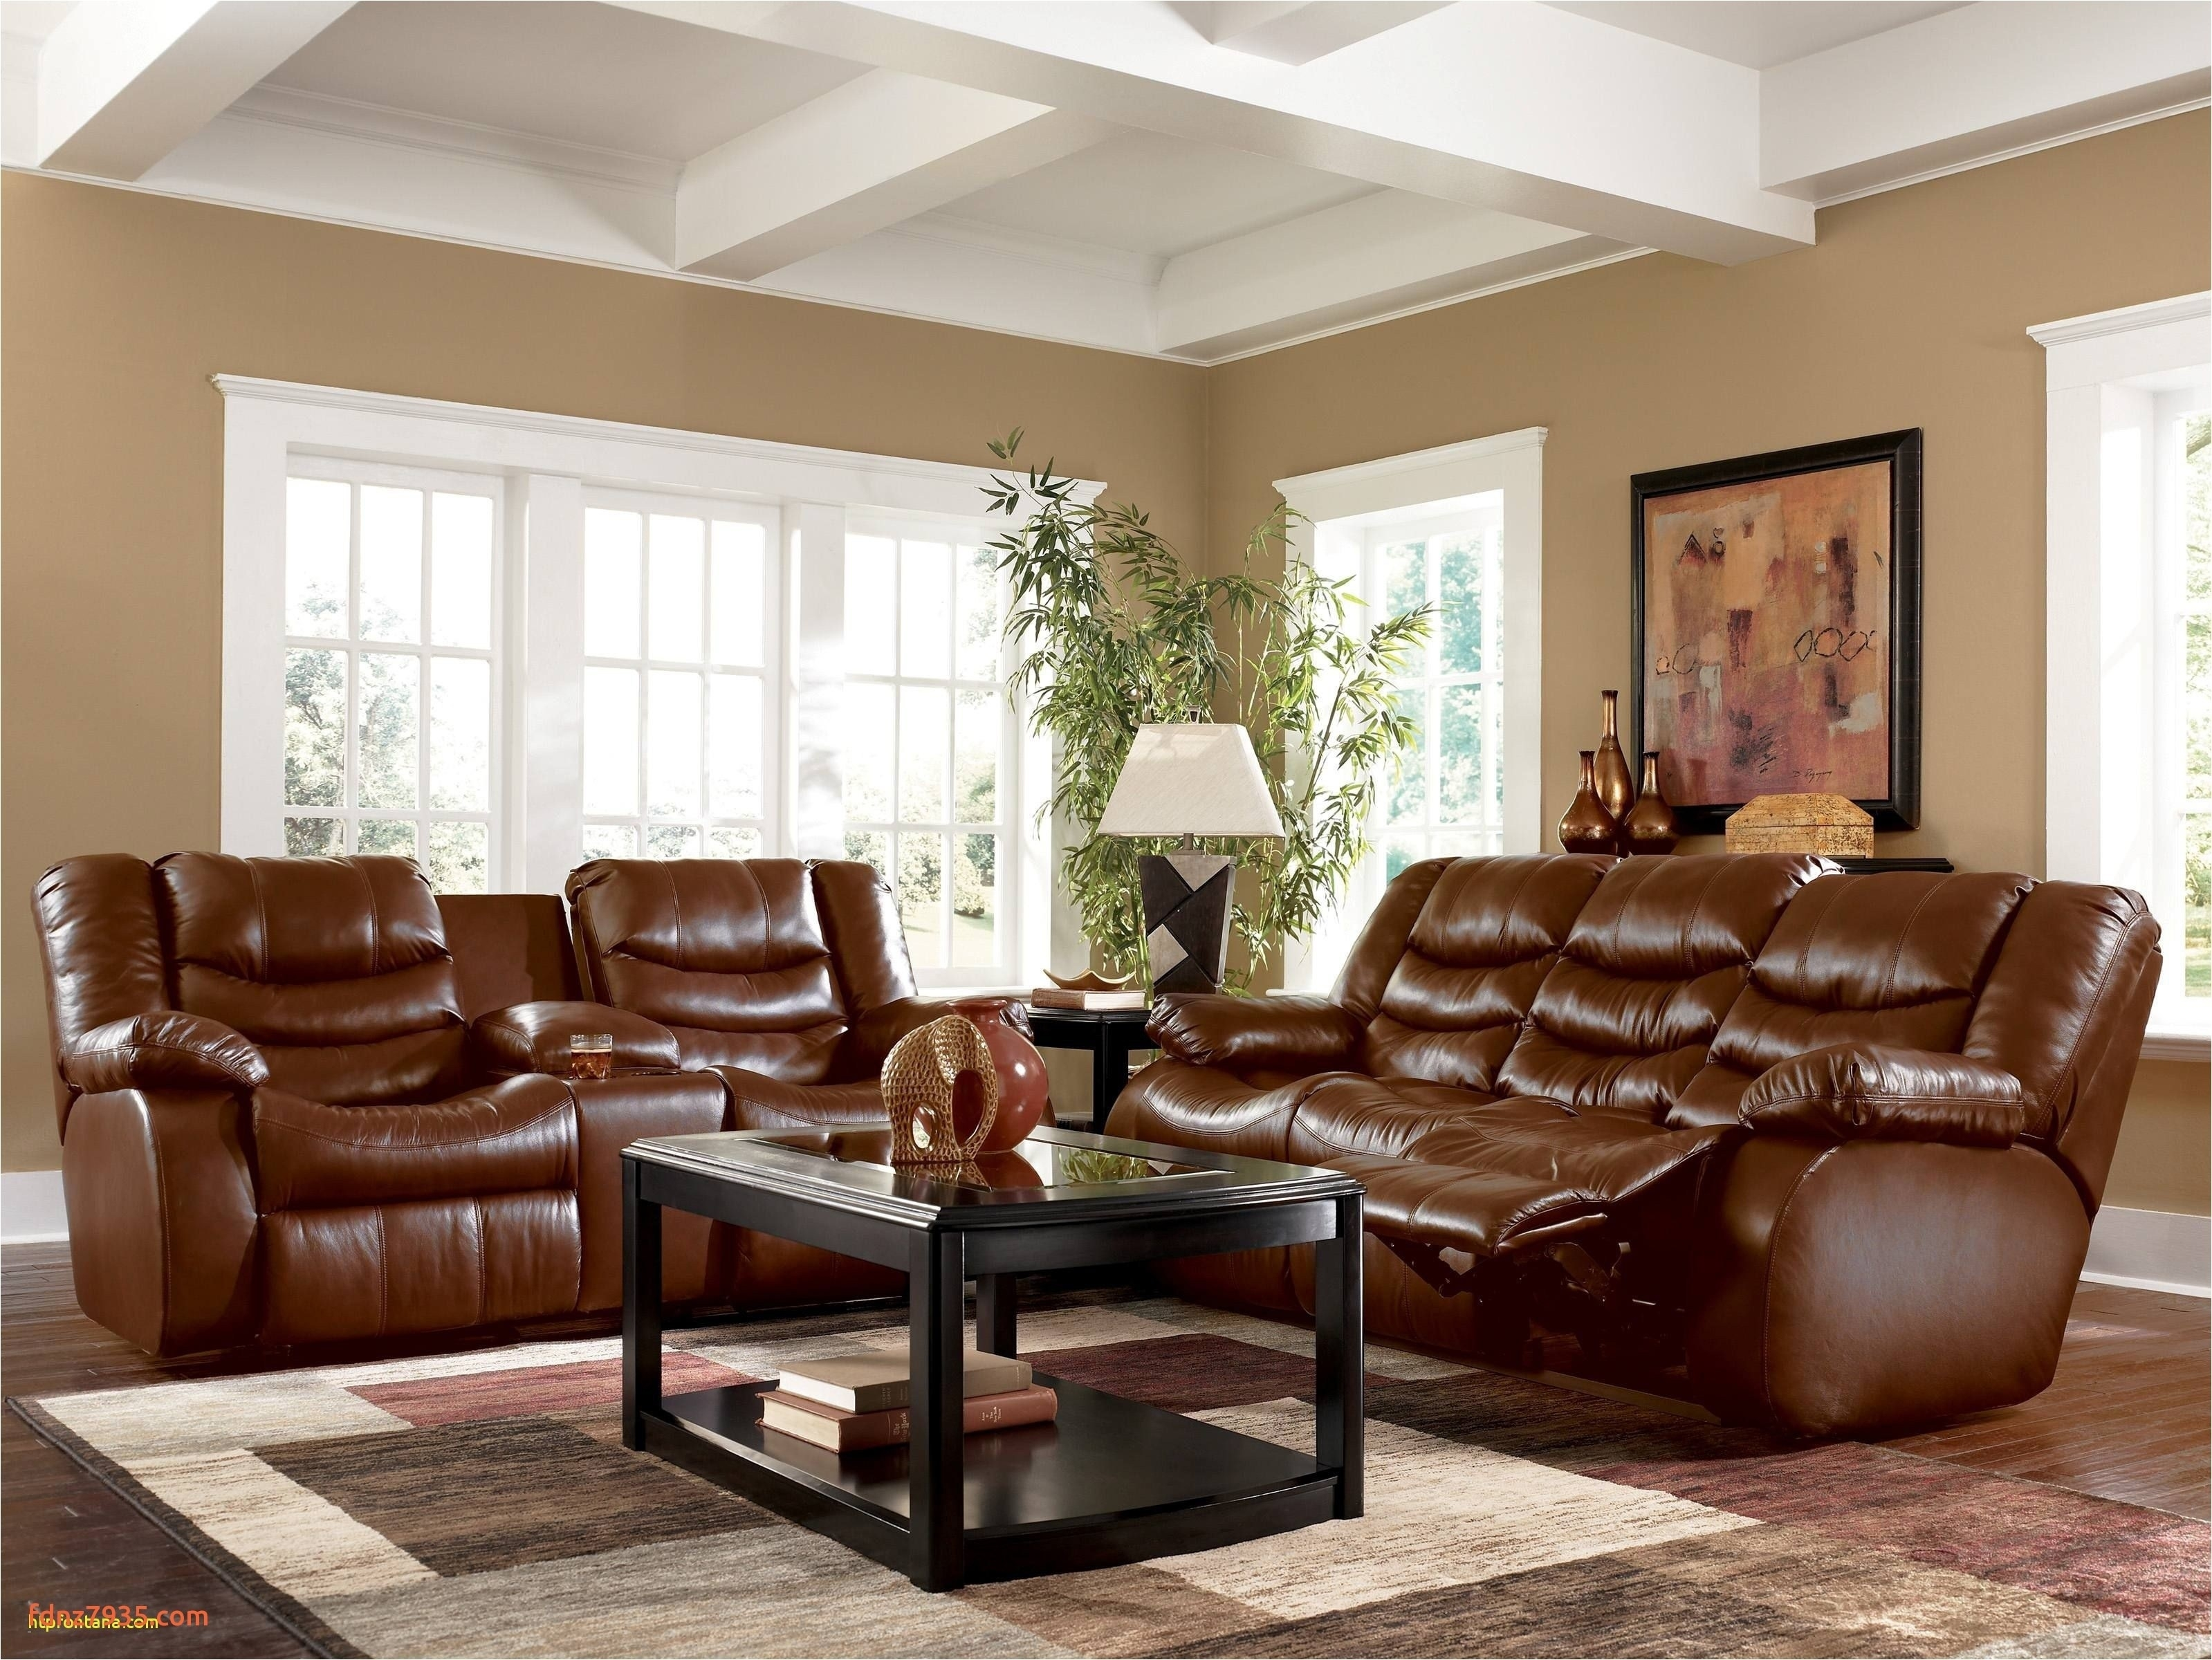 Room Using Brown Couch Decor Randolph Indoor And Outdoor Design